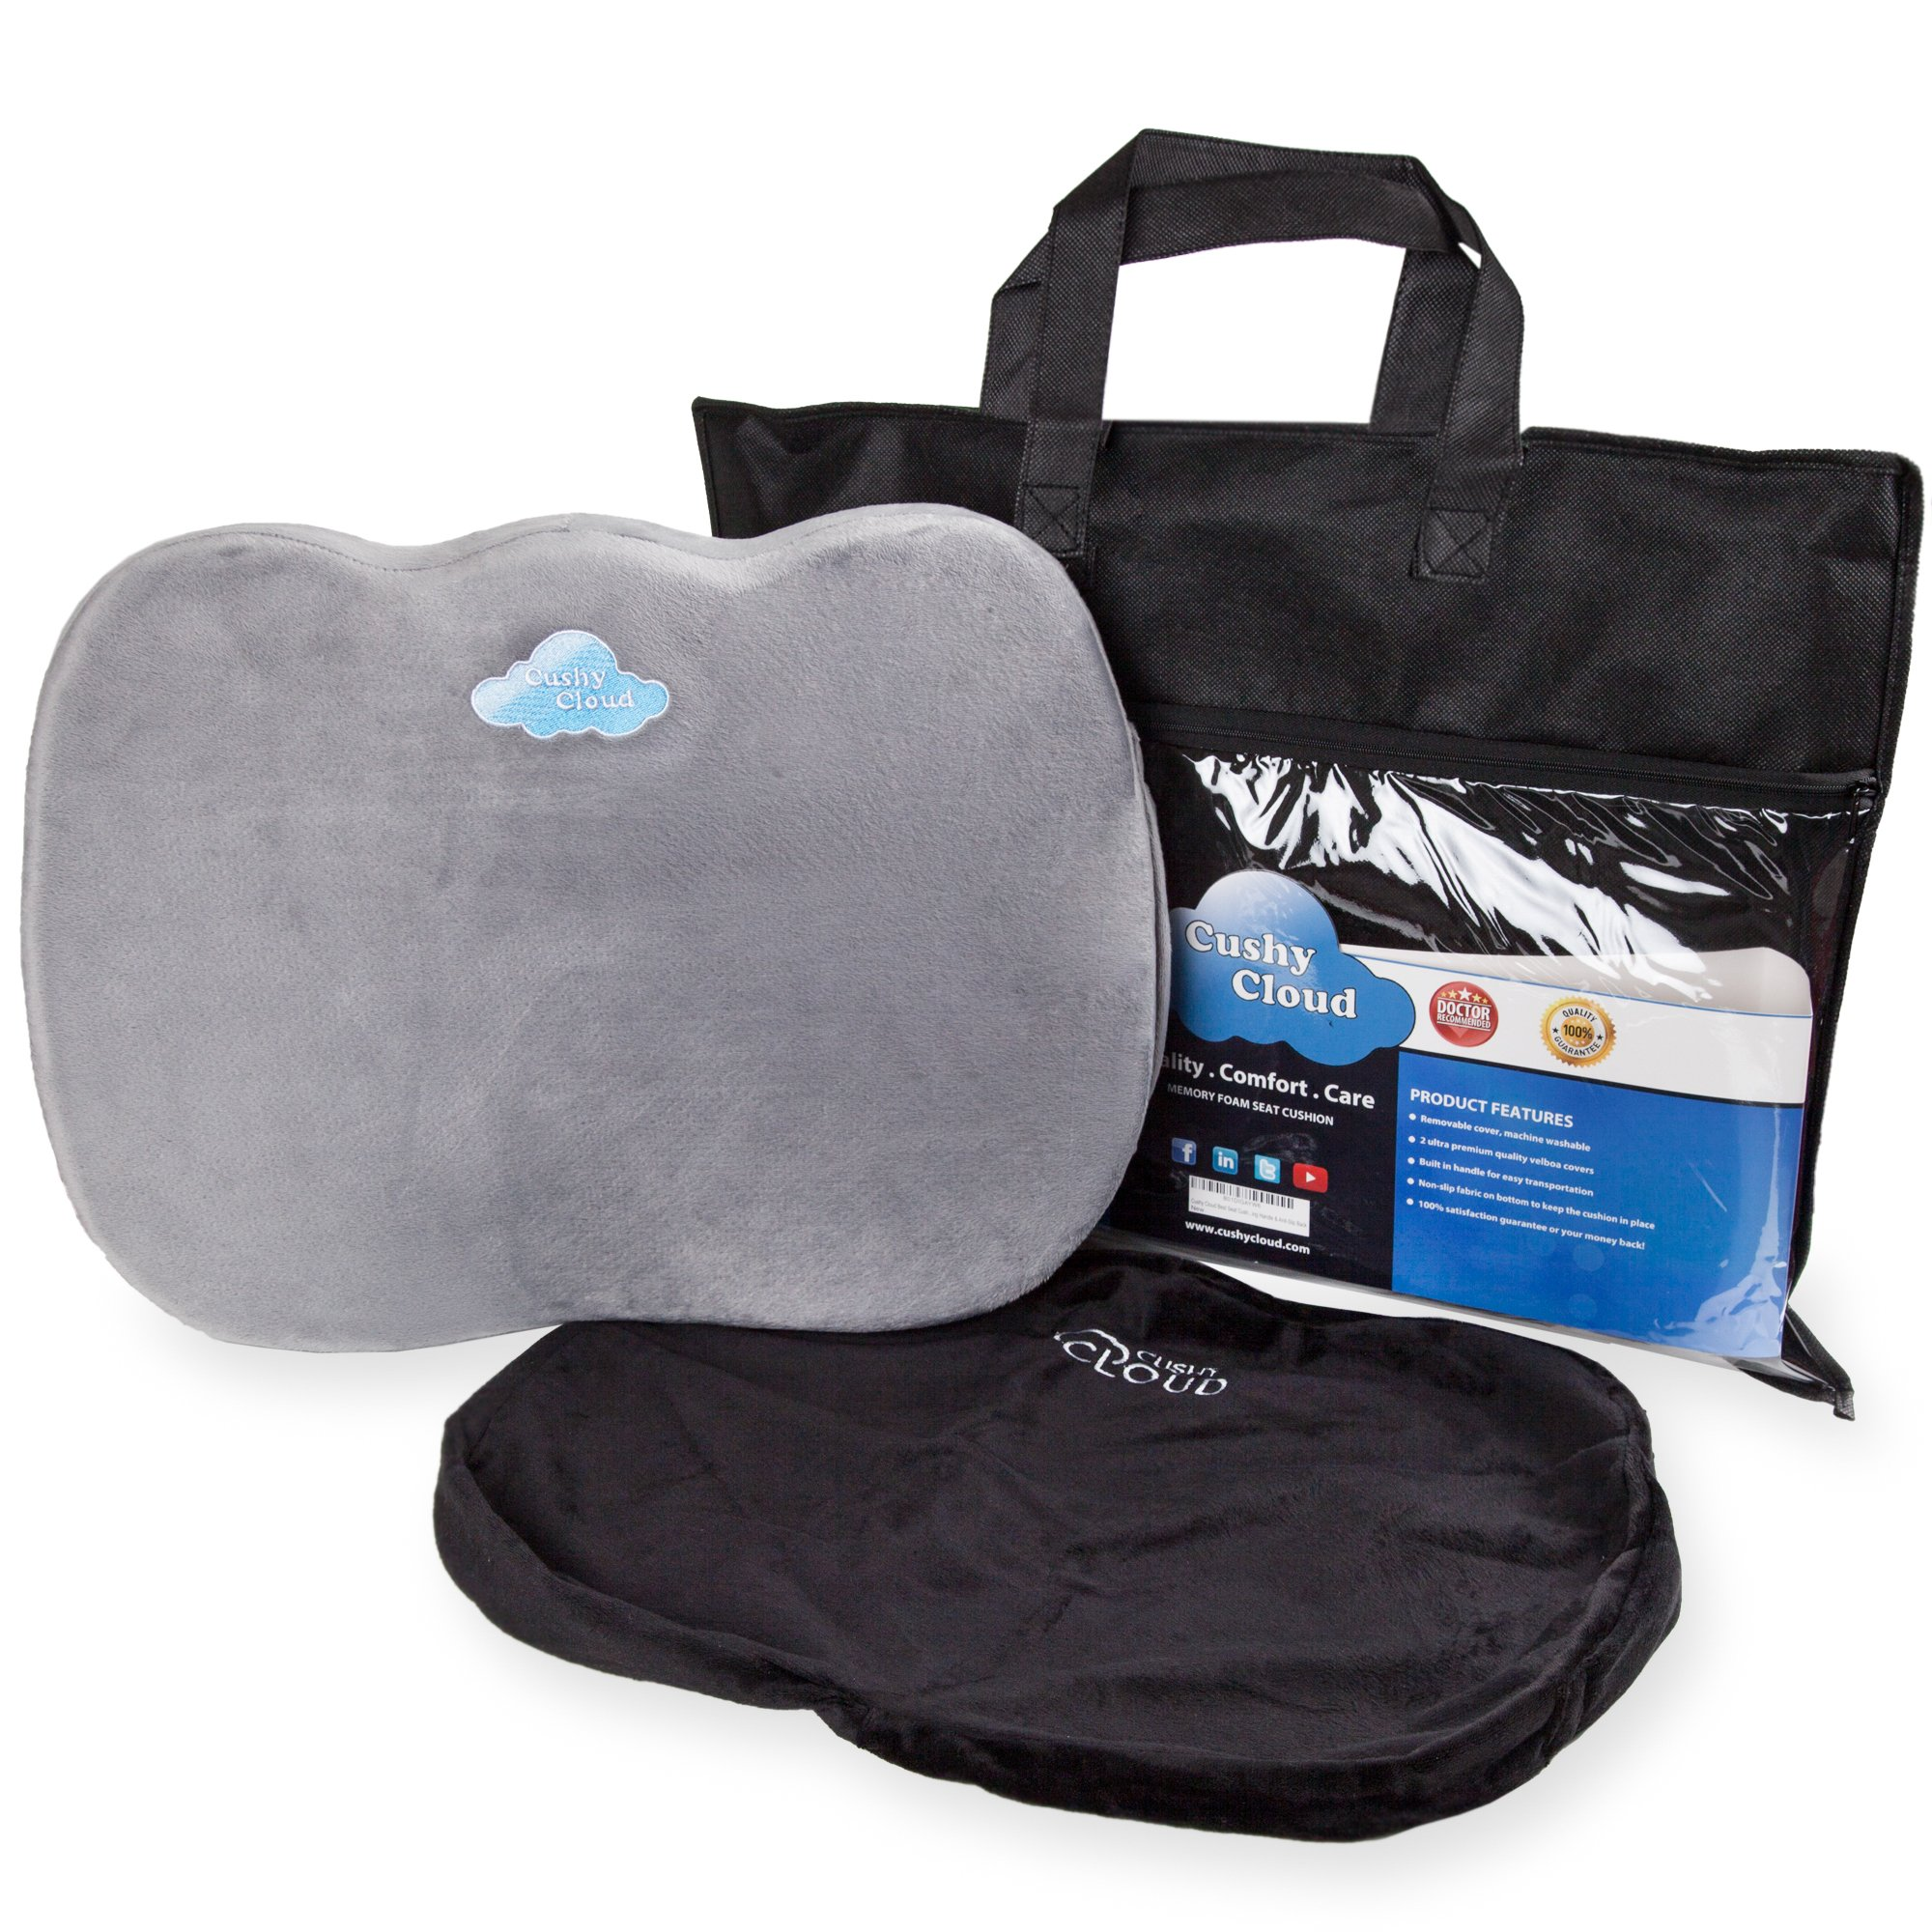 """Cushy Cloud Memory Foam Seat Cushion - Ergonomic Chair Pad - Provides Instant Pain Relief - Comes with Carrying Handle and Anti-Slip Back - 2 Plush Covers Included - Cushion Size: L14 x W18 x H2.5"""""""